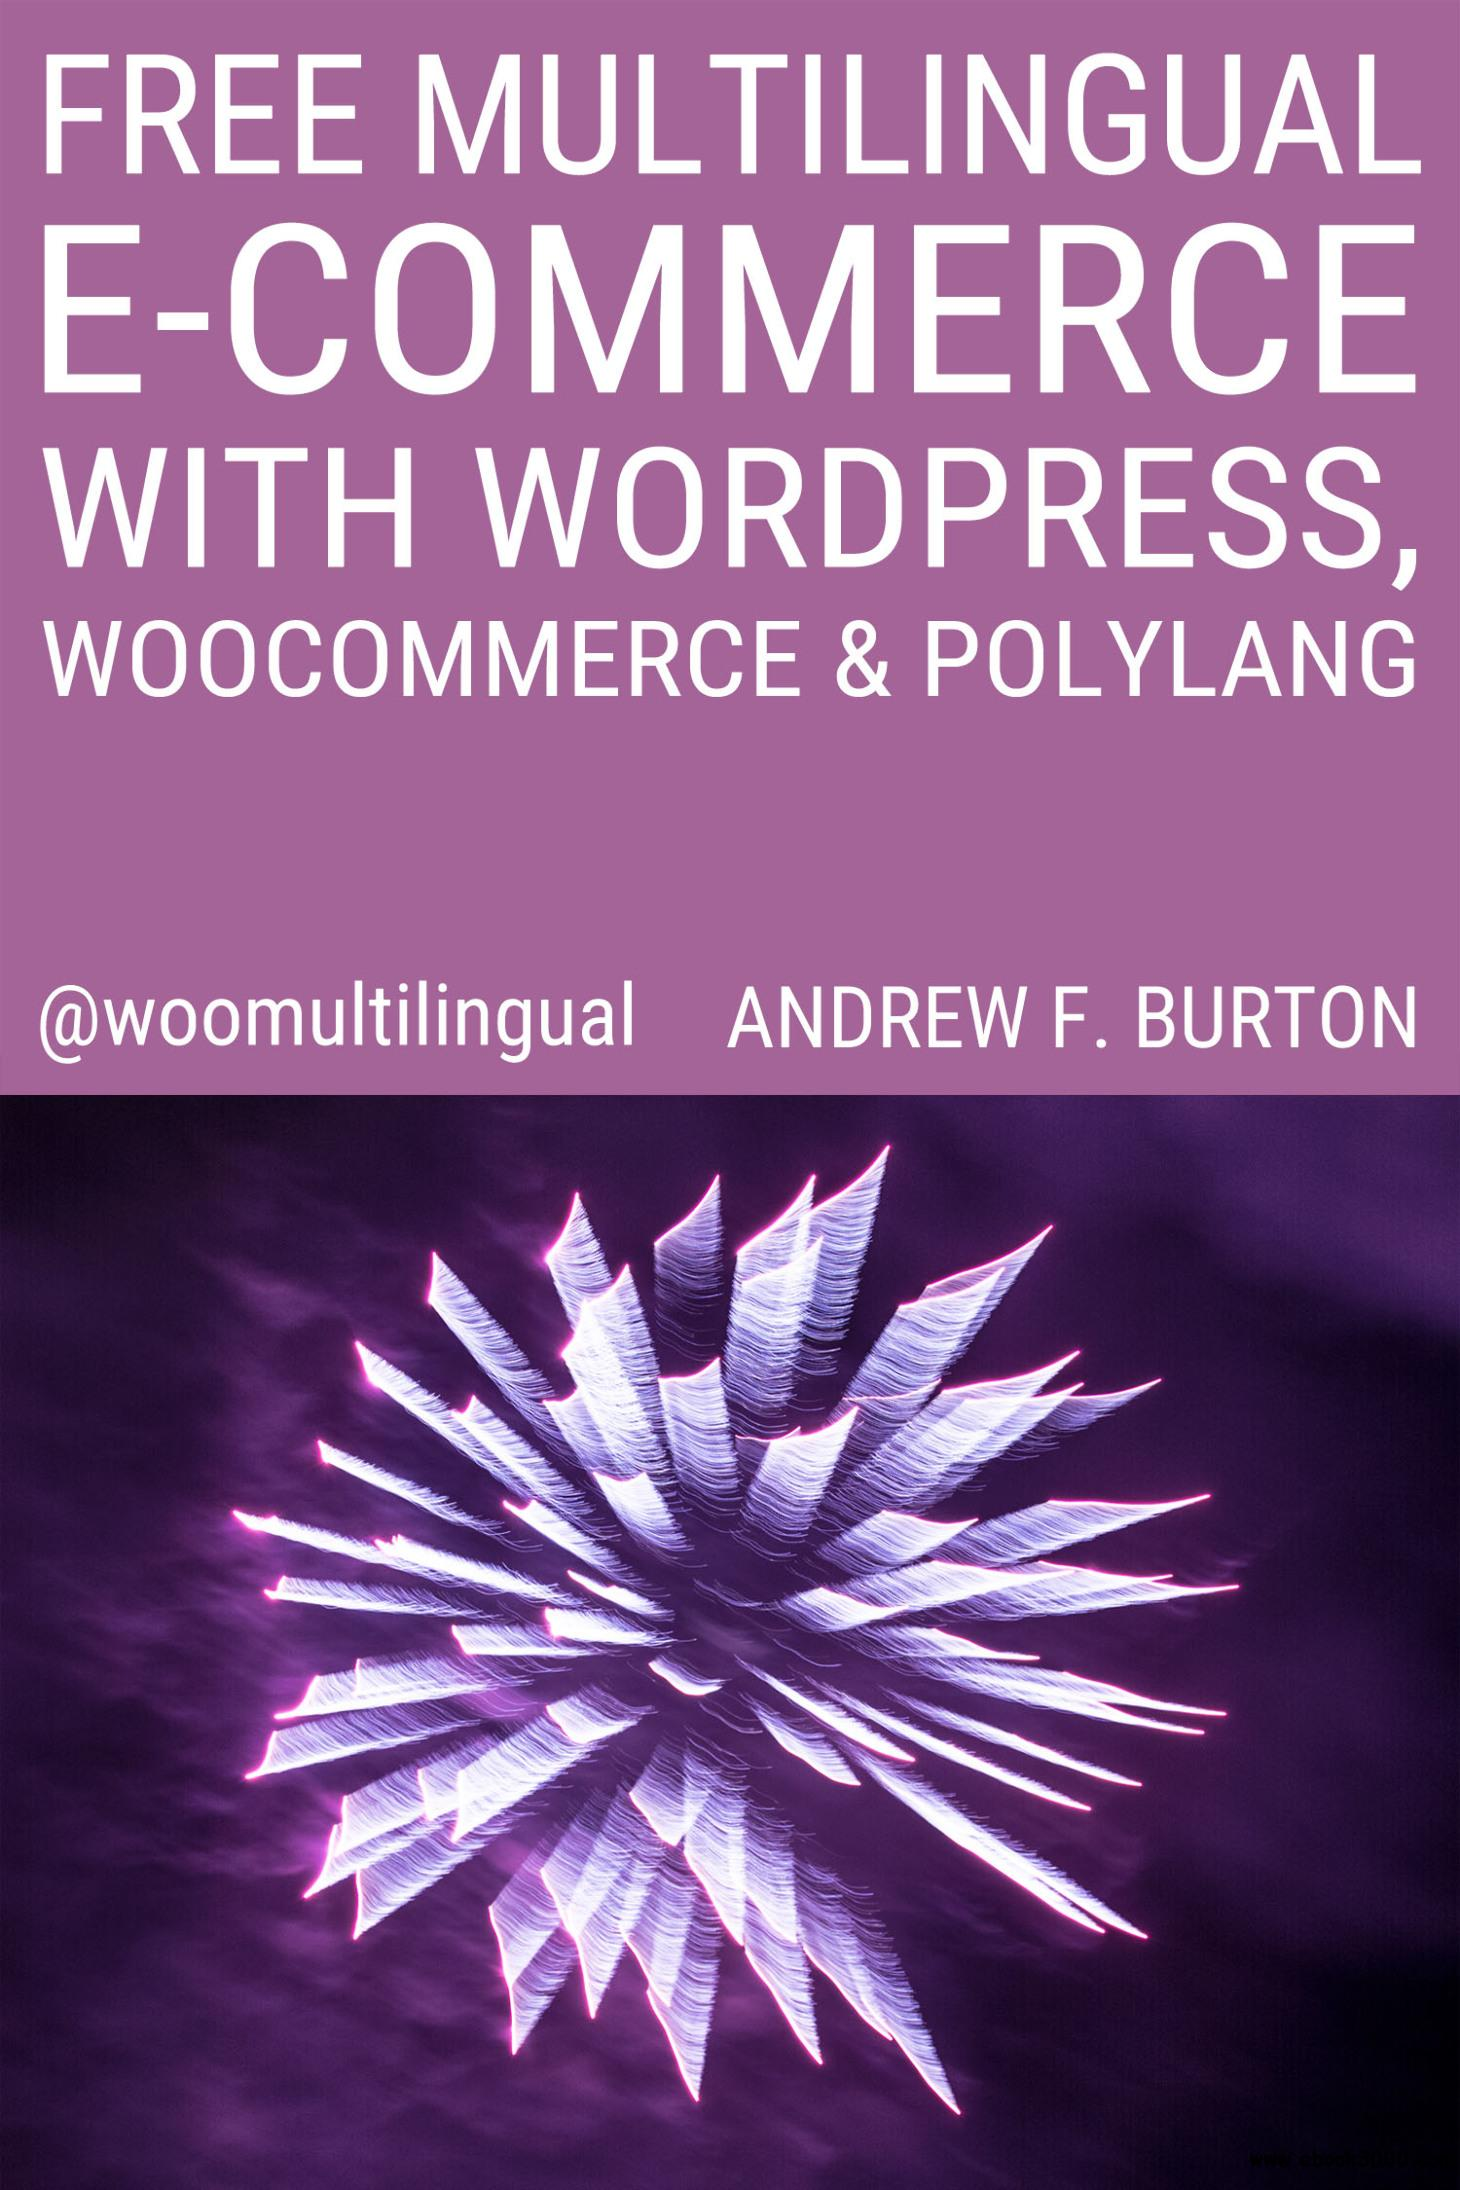 Free Multilingual E-Commerce With WordPress, WooCommerce & Polylang